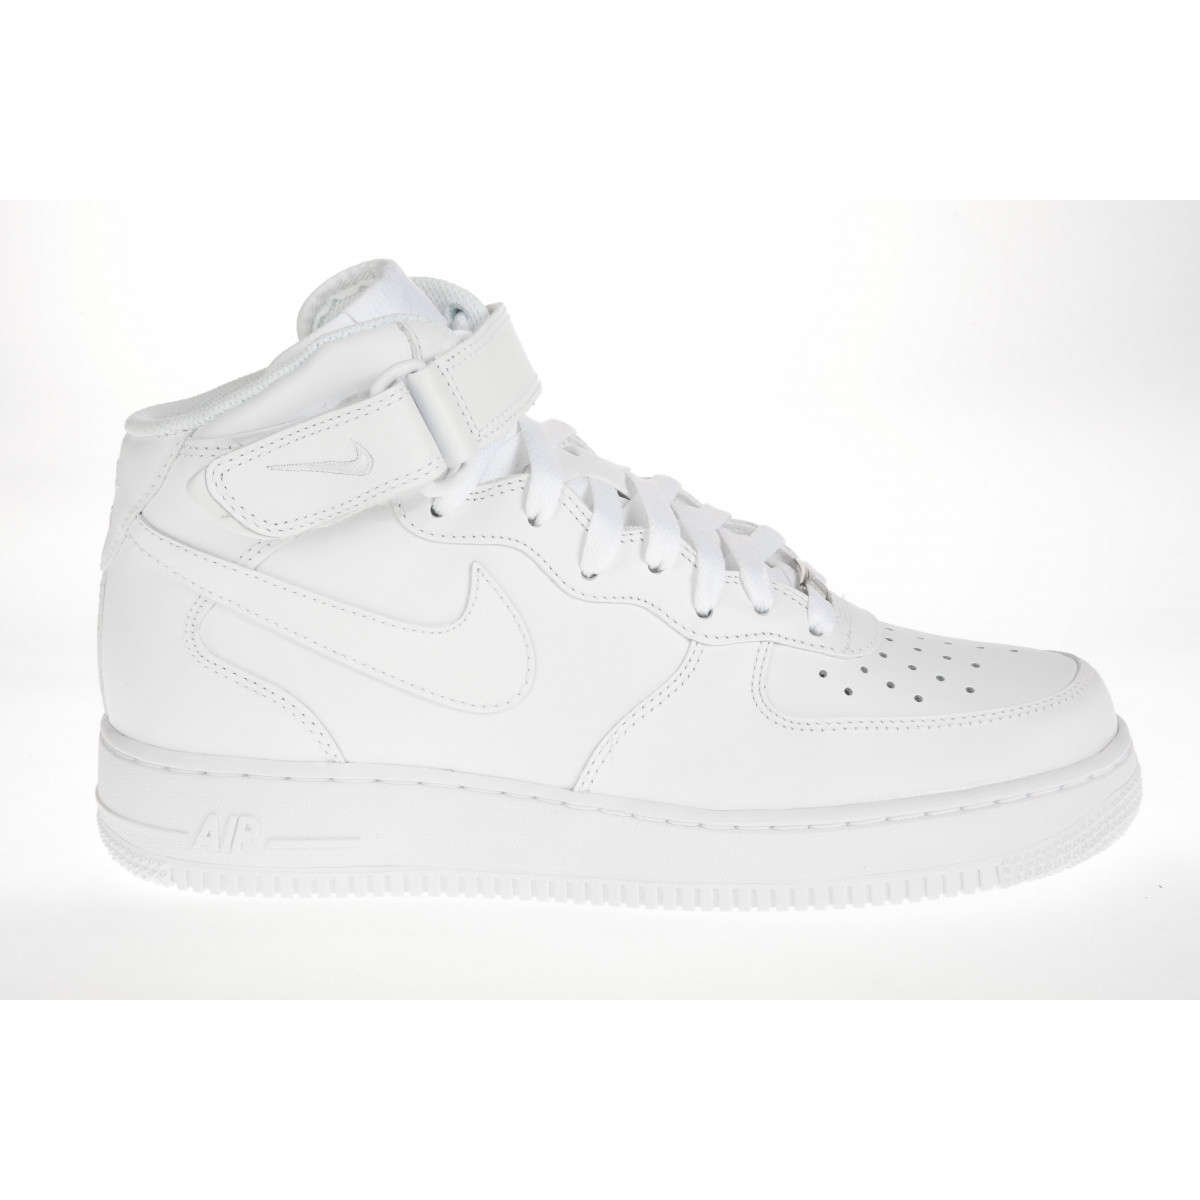 premium selection 2cb82 fbb7c Basket Nike Air Force Mid - Ref. 315123-111. Loading zoom